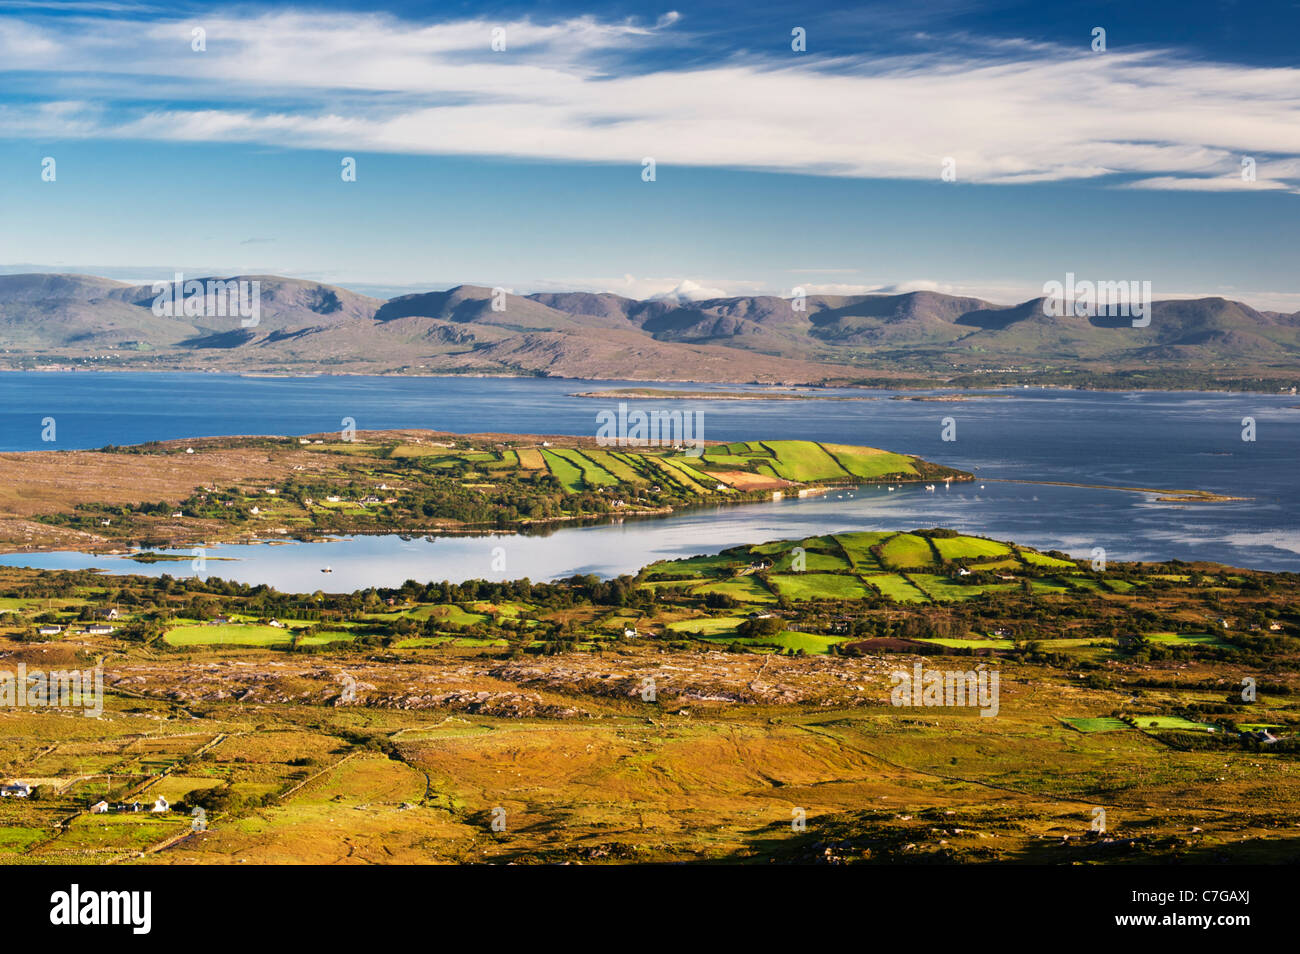 View over Ardgroom, Beara Peninsula, County Cork, Ireland, across Kenmare Bay to the mountains of the Iveragh Peninsula - Stock Image